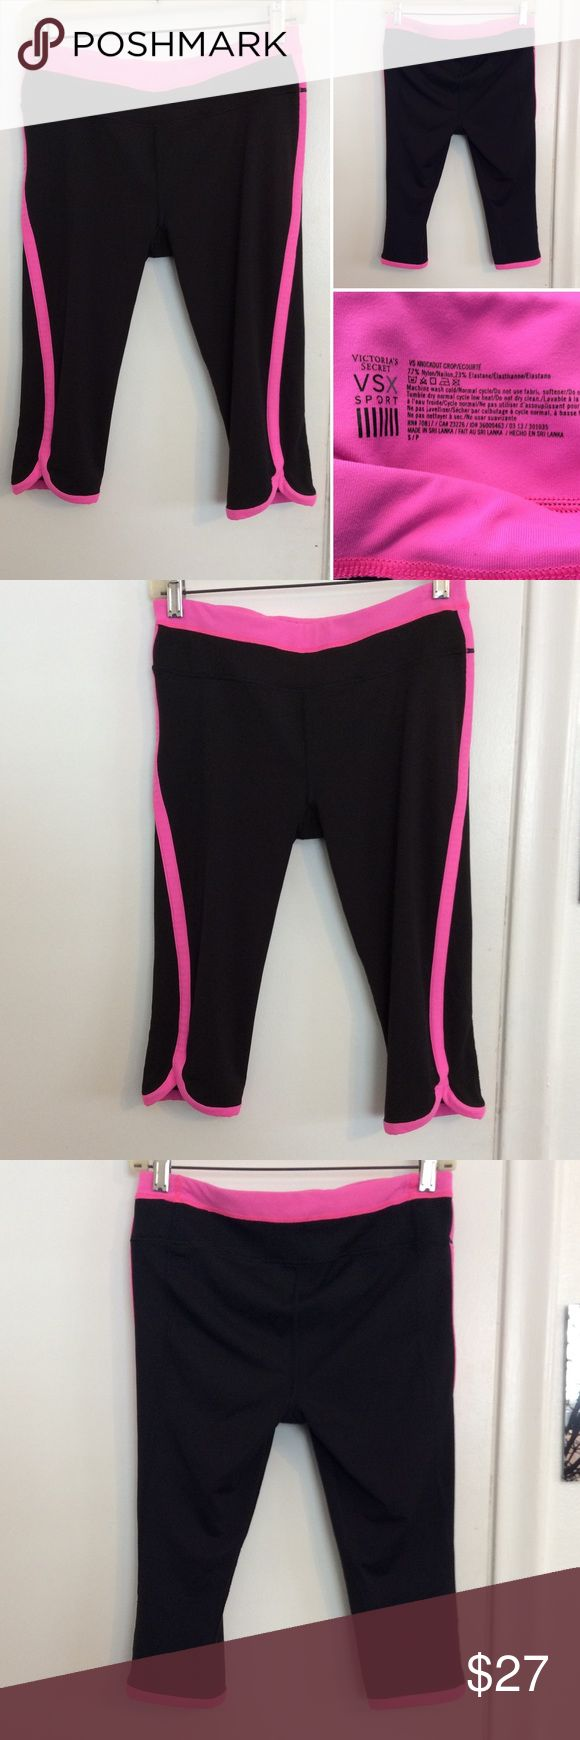 VSX Sport Knockout Cropped Yoga Pants These Victoria's Secret Sport yoga pants are in excellent new like condition. They are knee length in a jet black color with pink trimming. These are a size small and are a nylon blend Victoria's Secret Pants Leggings